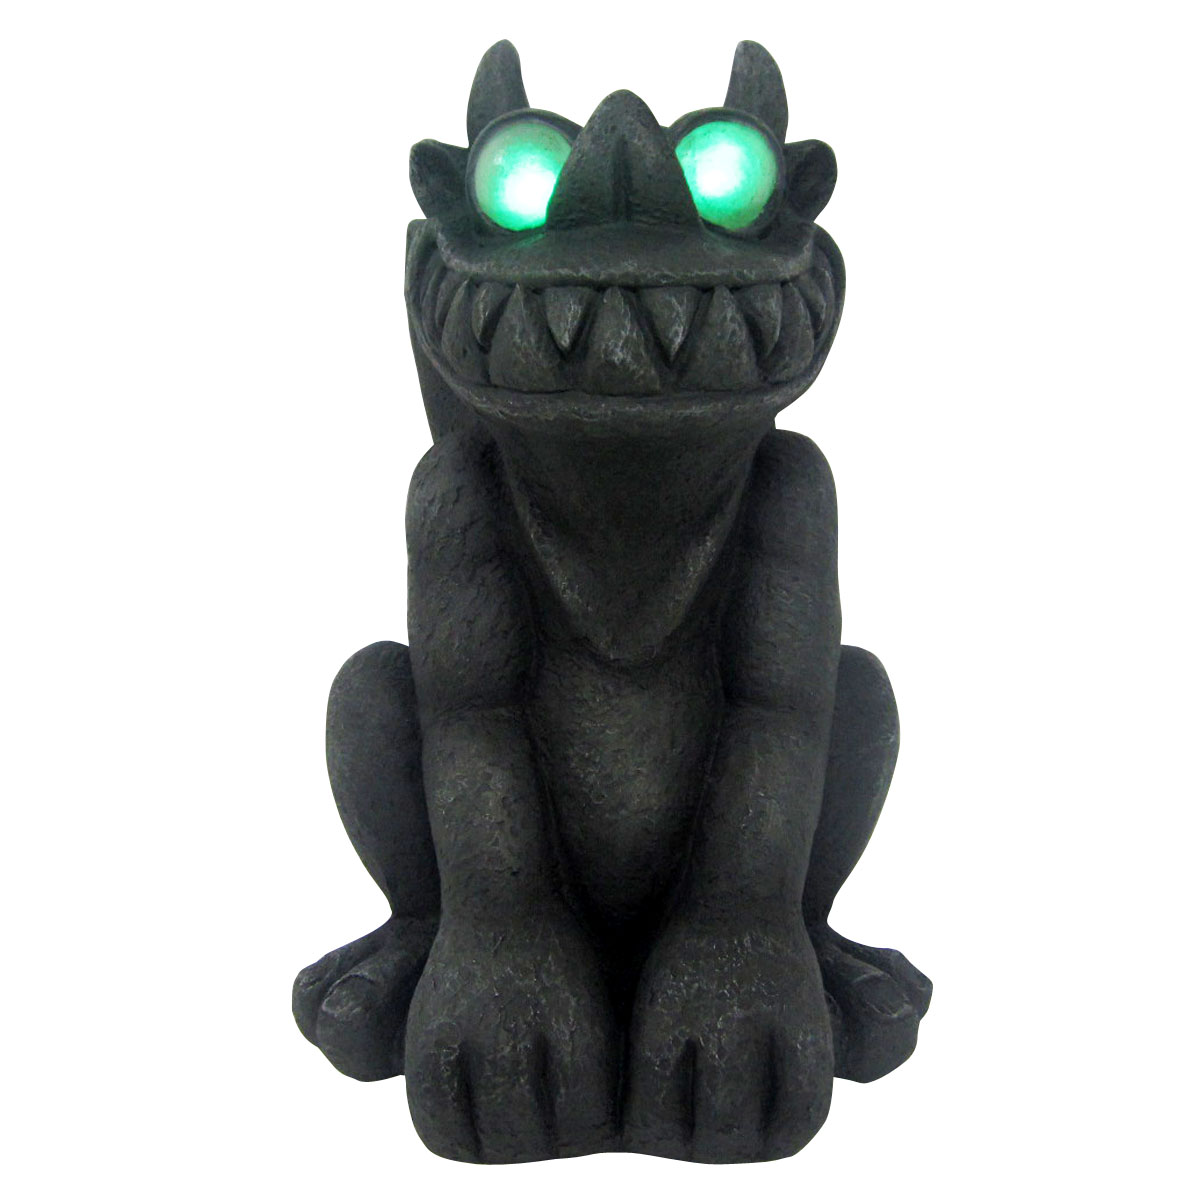 "Design House 18.1"" LED Gargoyle Light-Up Lawn Decoration"